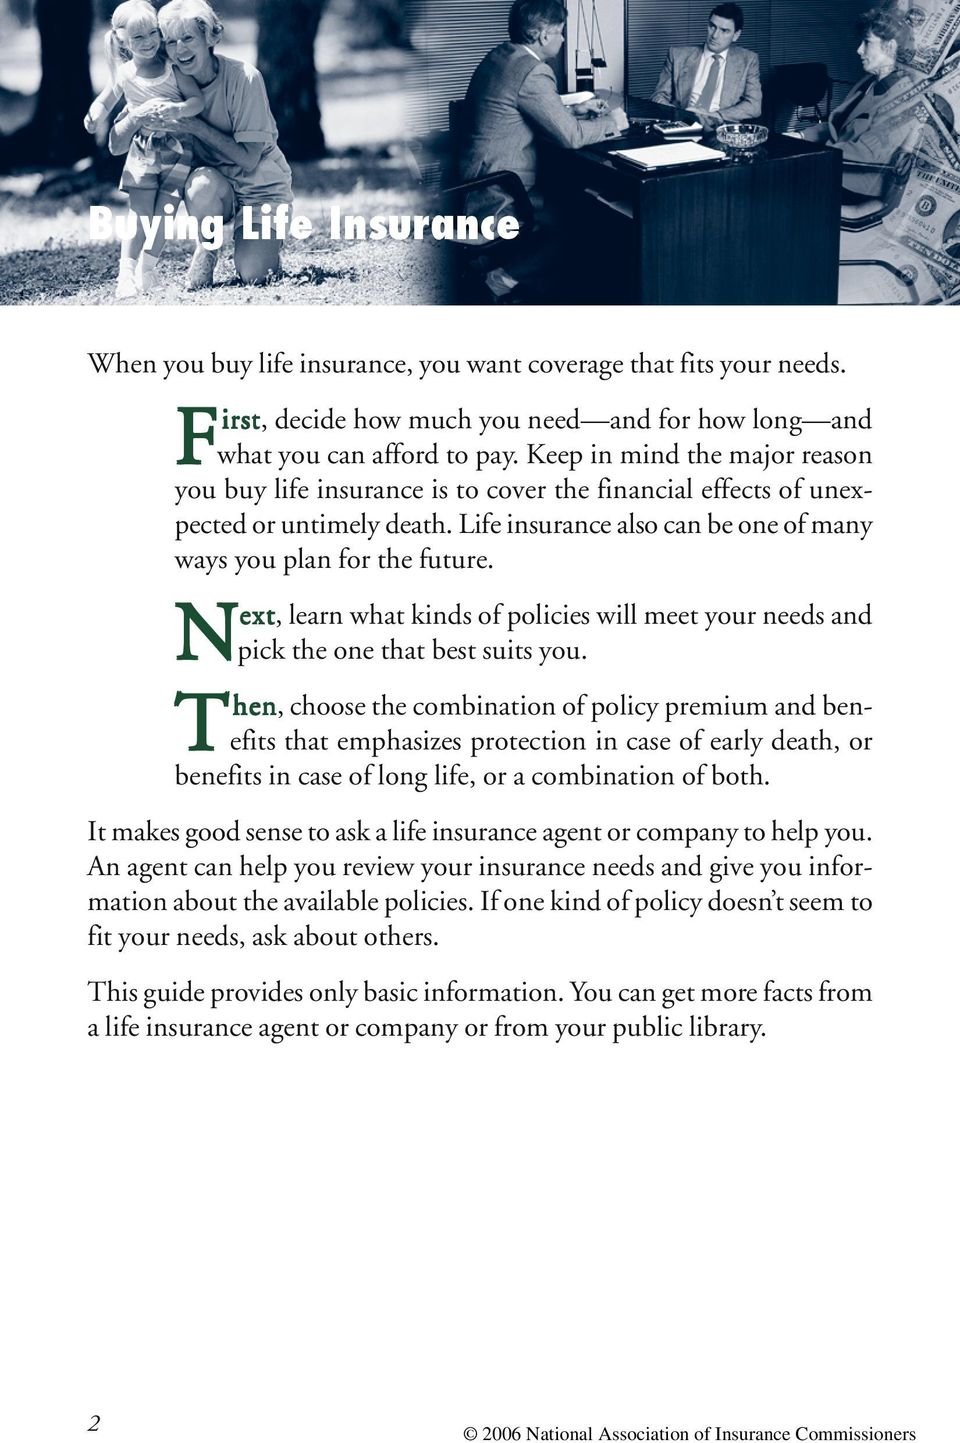 N ext, learn what kinds of policies will meet your needs and pick the one that best suits you.